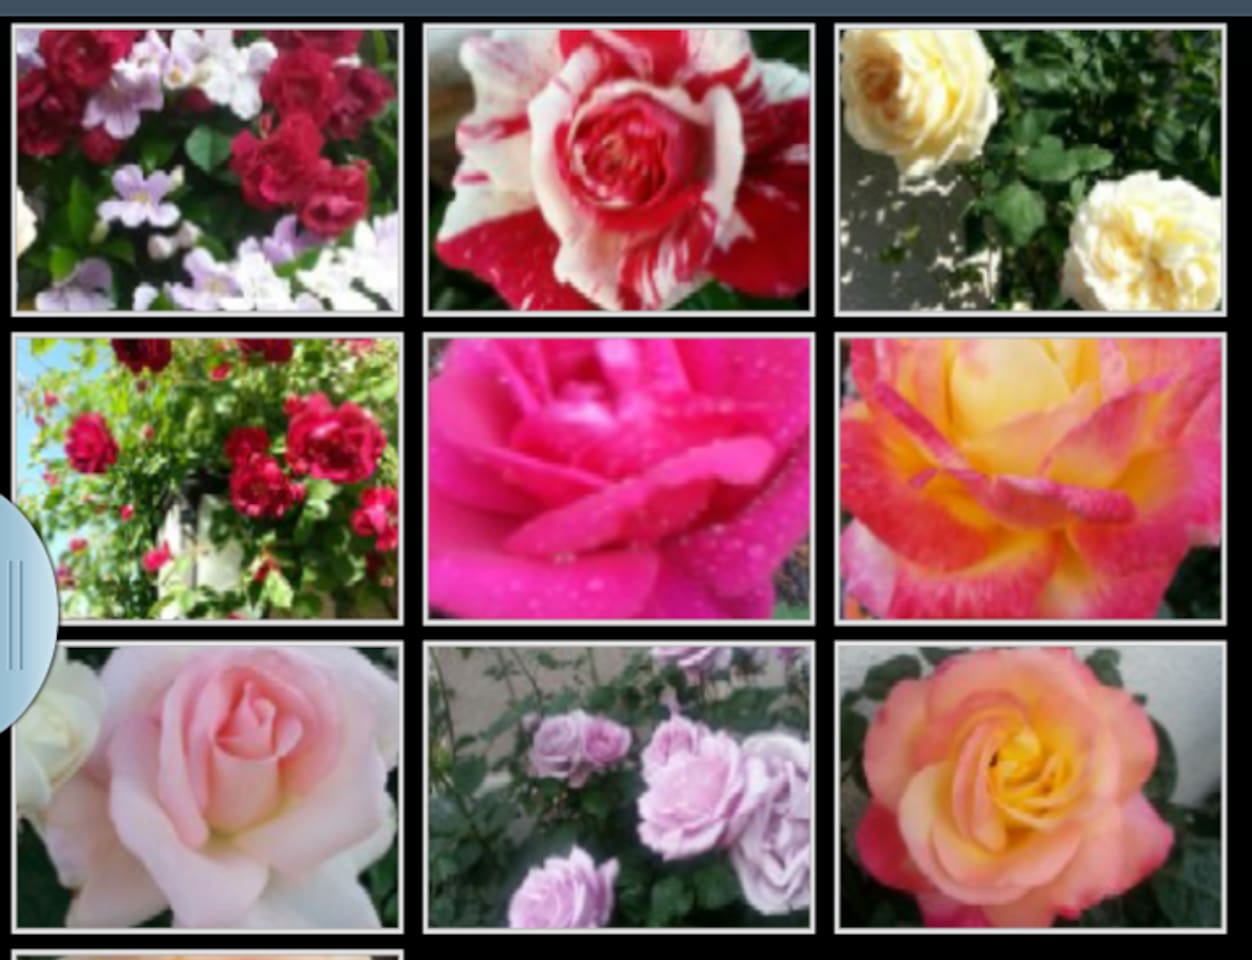 Smell our award winning roses at our garden.